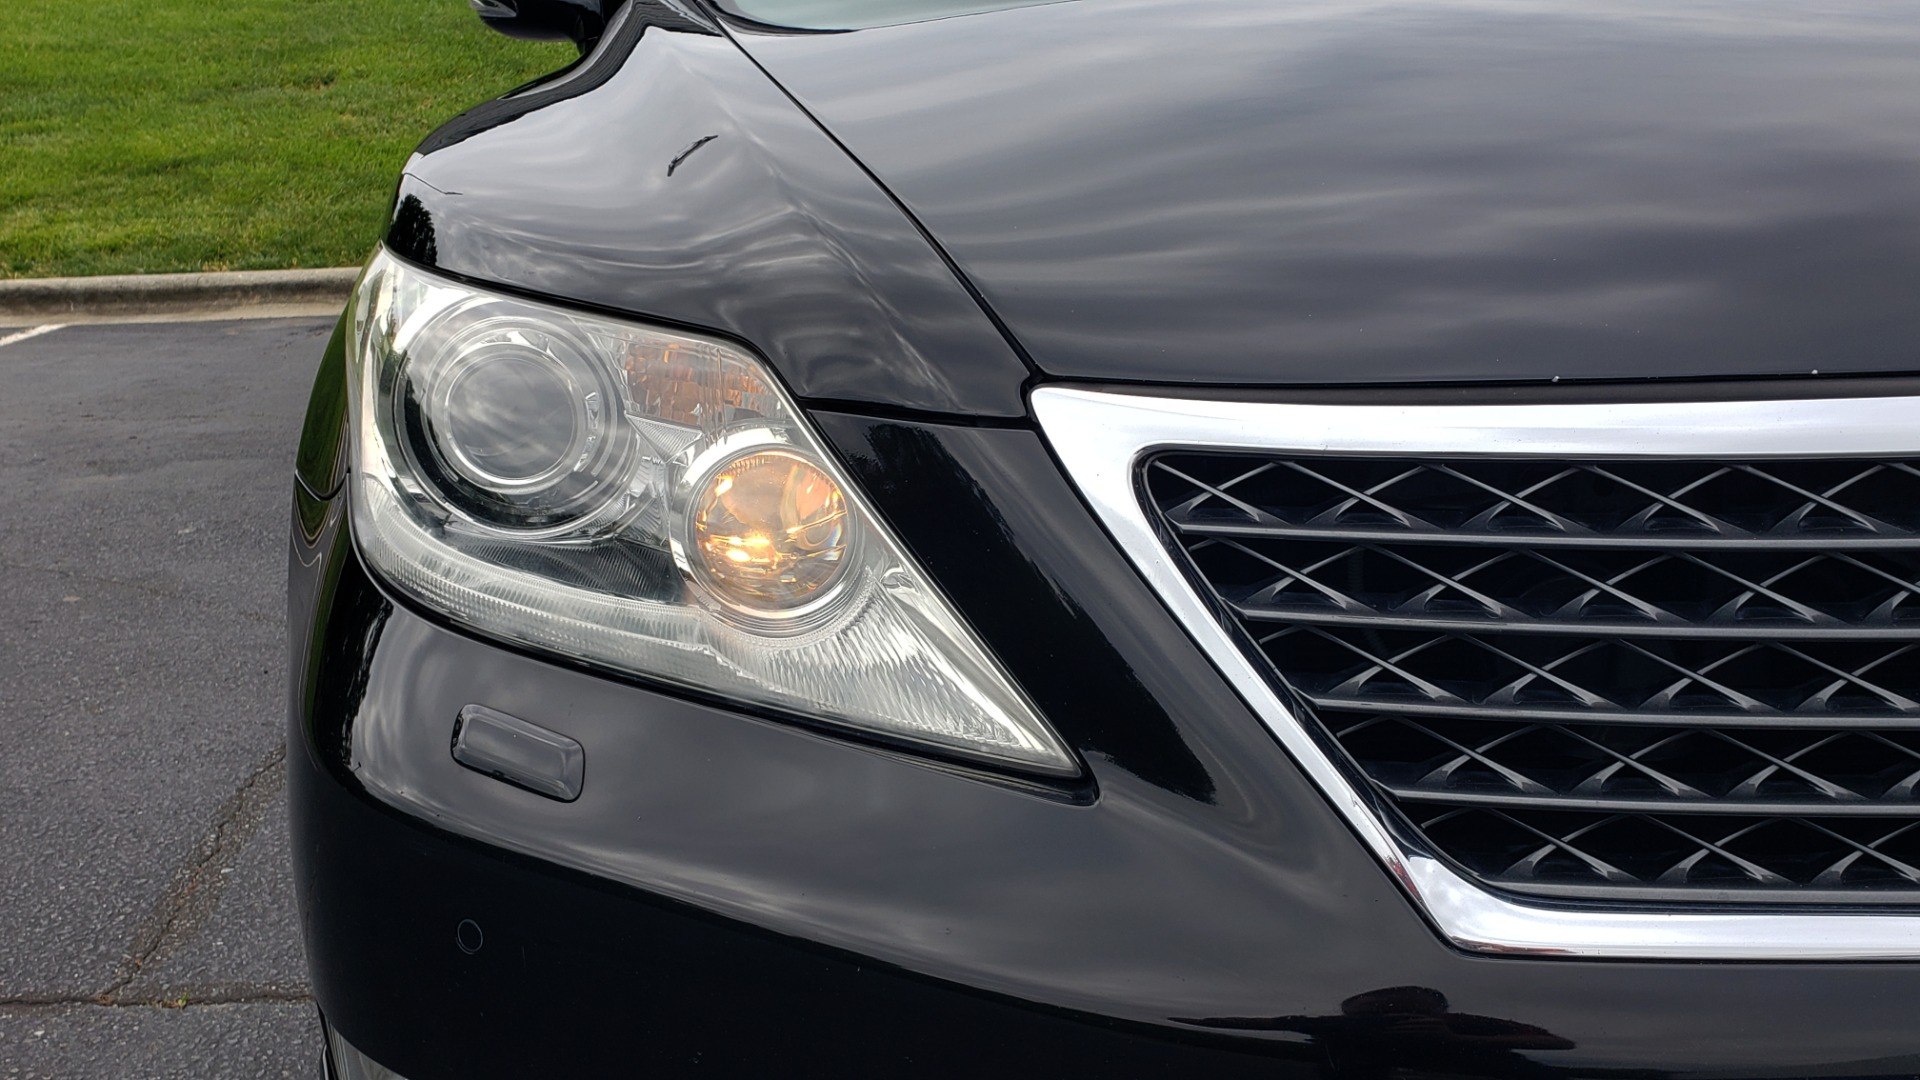 Used 2012 Lexus LS 460 COMFORT W/SPORT / VENT SEATS / NAV / MARK LEV SND / SUNROOF for sale Sold at Formula Imports in Charlotte NC 28227 23